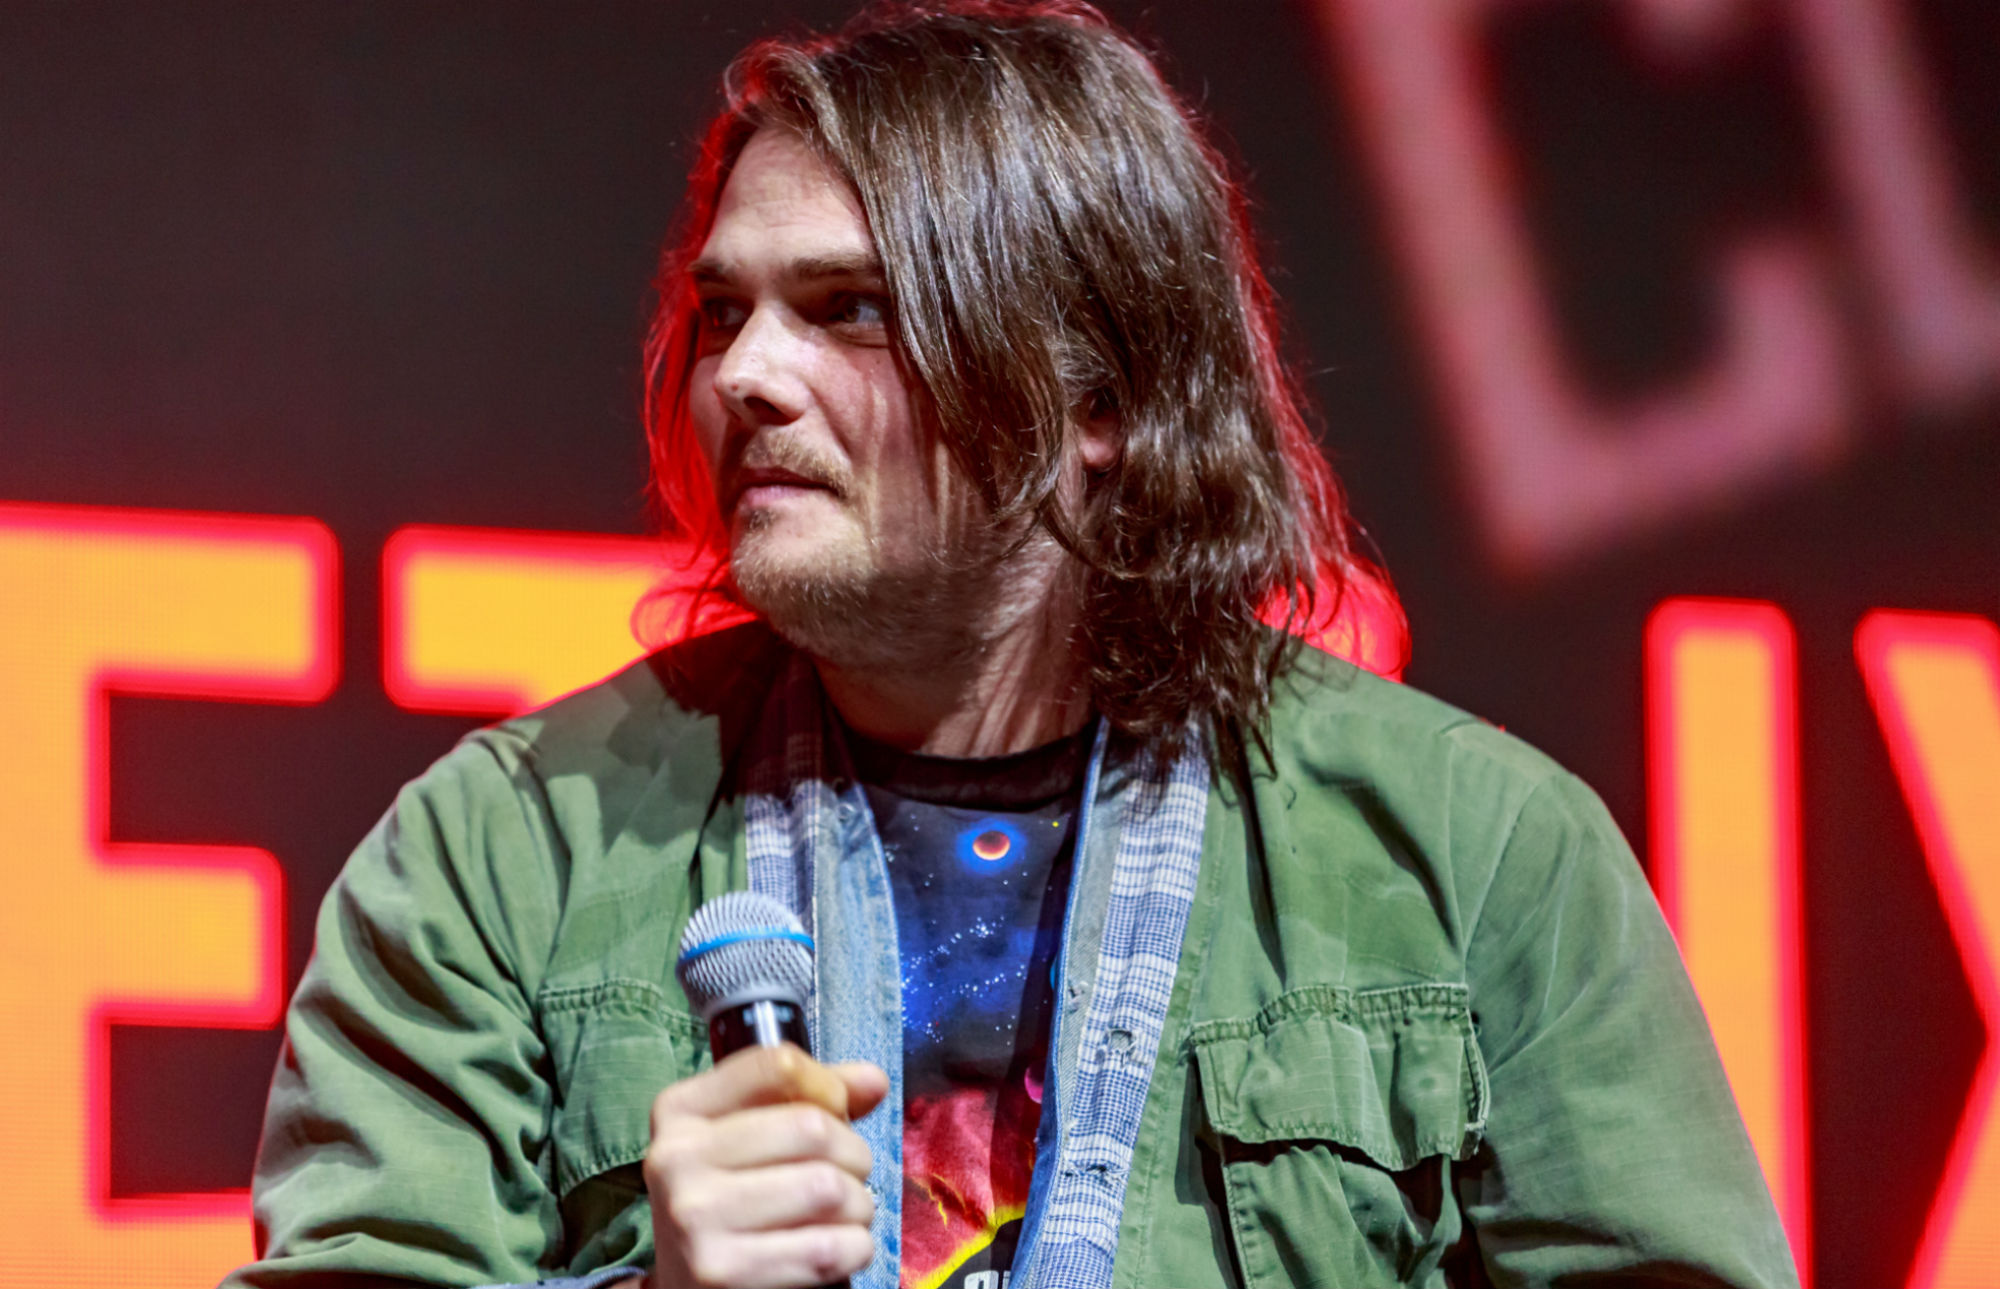 Gerard Way has co-authored a new 'Umbrella Academy' Christmas spin off comic